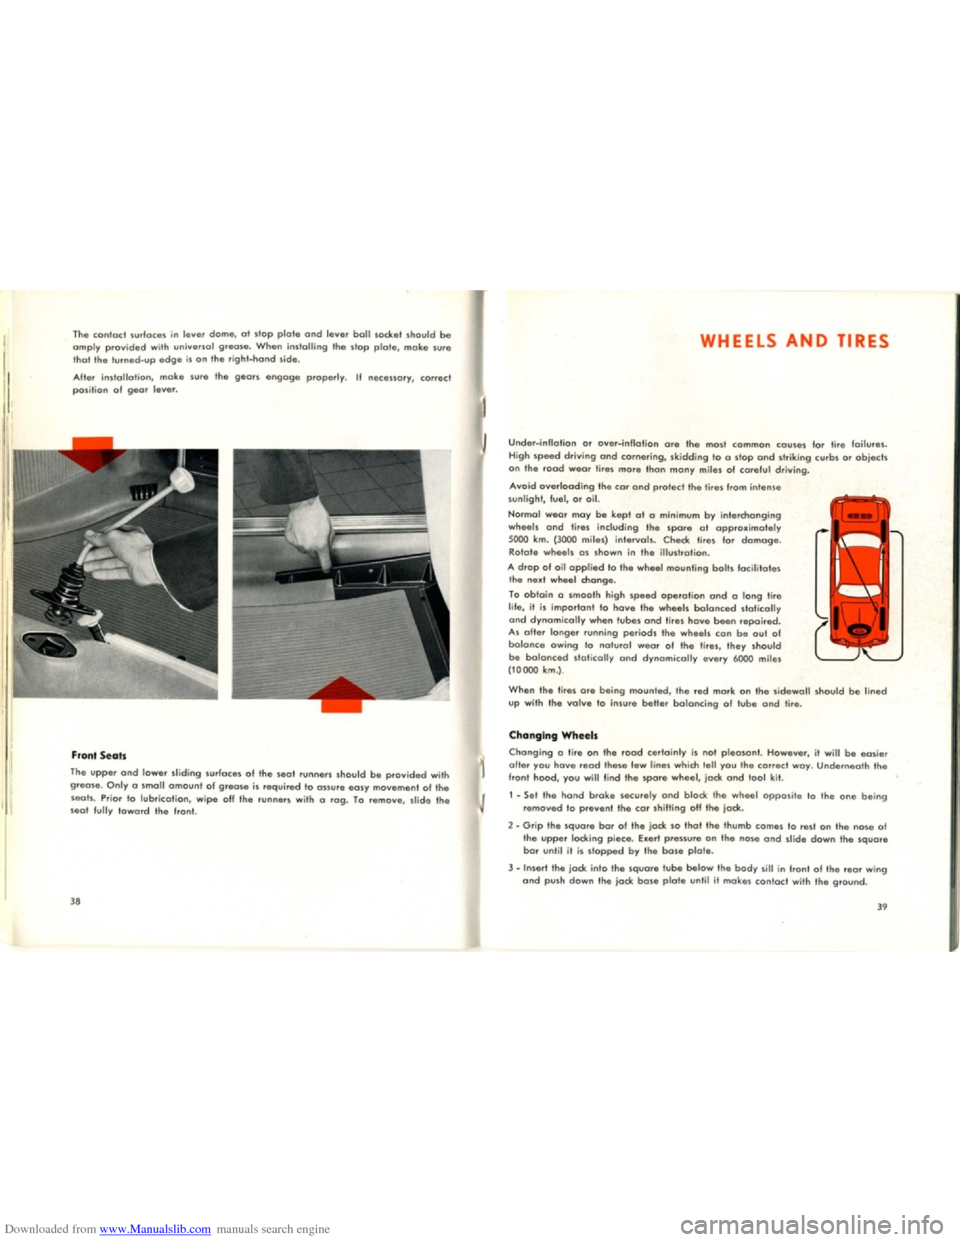 VOLKSWAGEN KARMANN GHIA 1958 1.G Owners Manual, Page 21